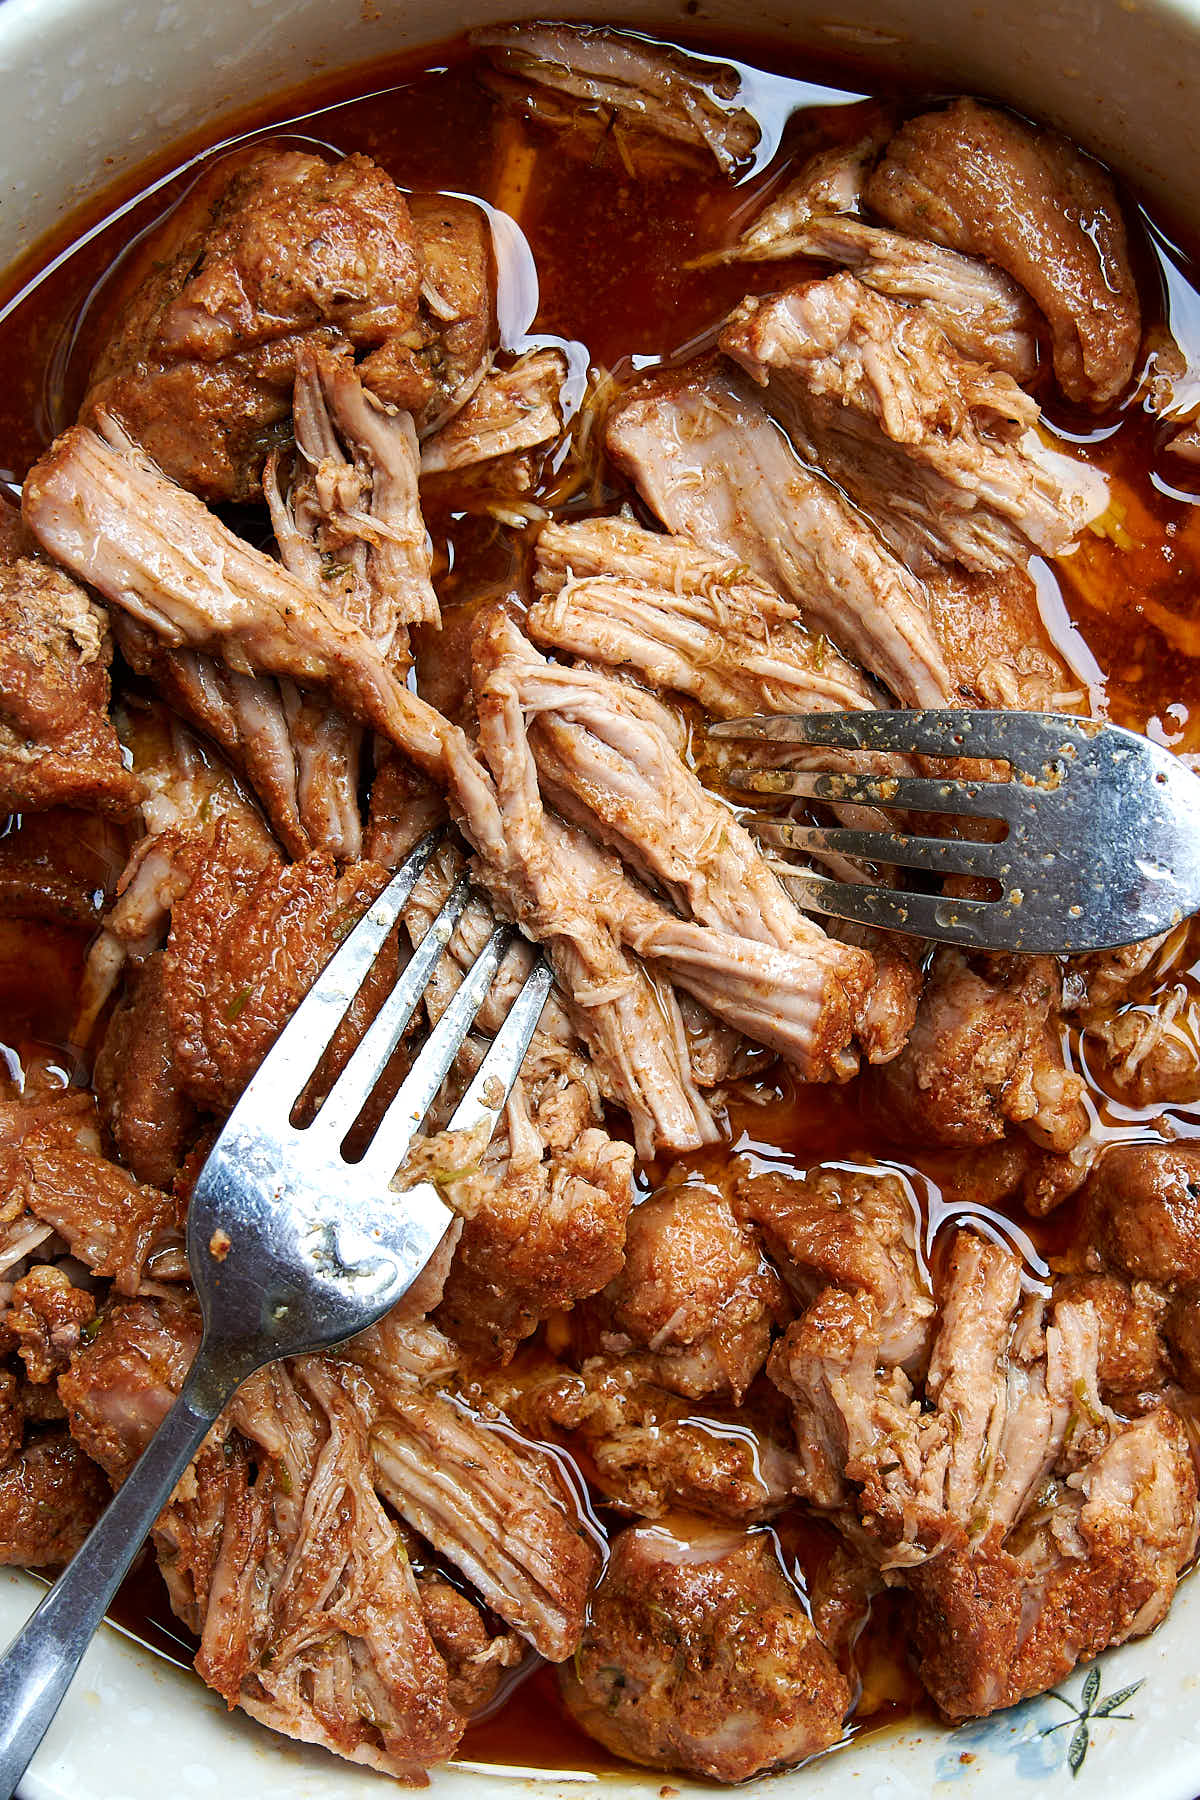 Pork being pulled apart in a bowl with amber juices.